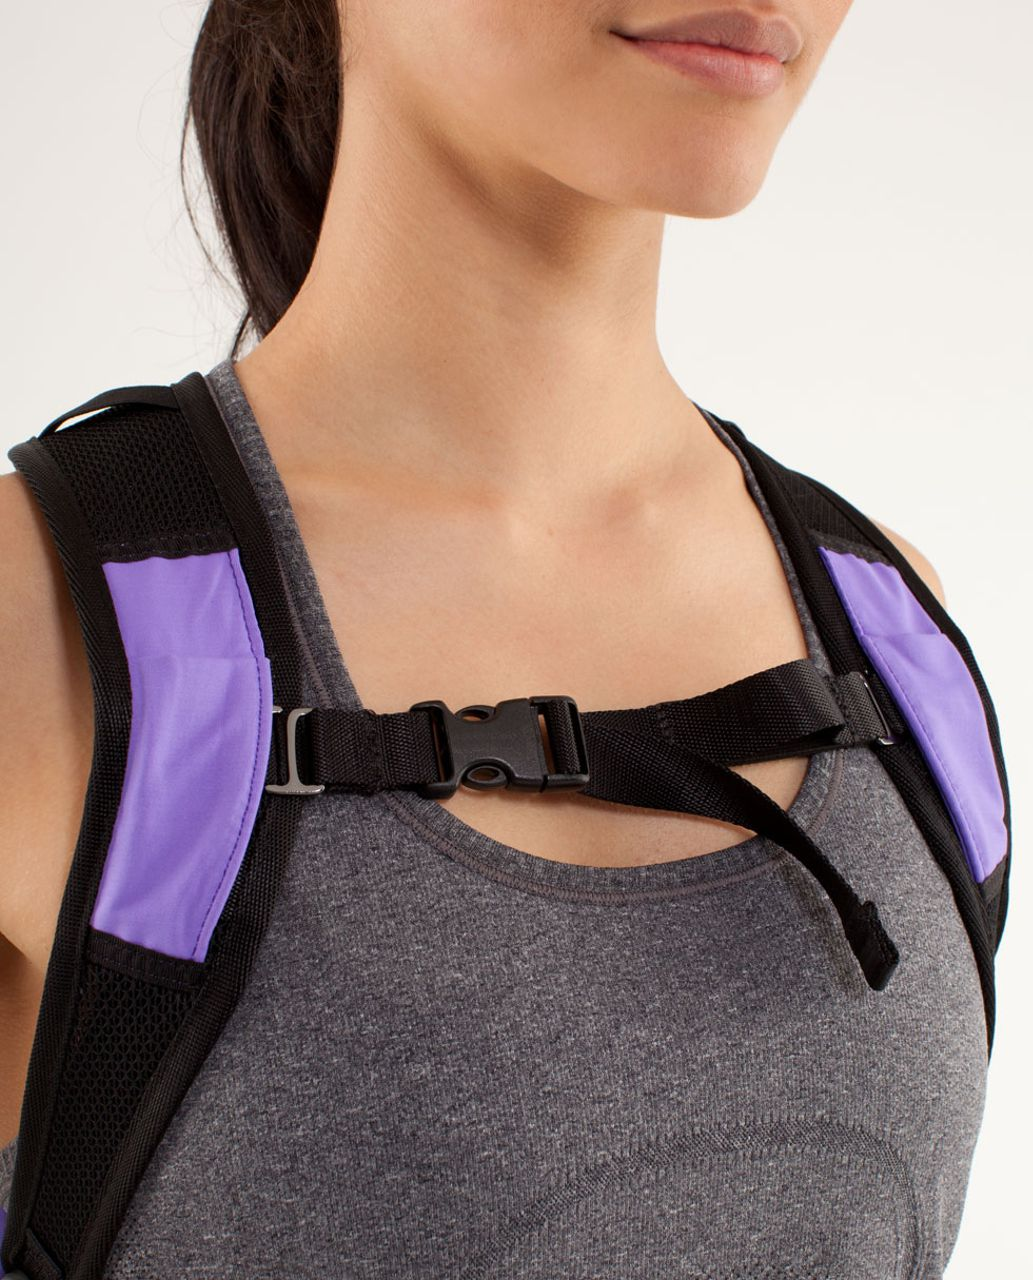 Lululemon Run From Work Backpack II - Power Purple